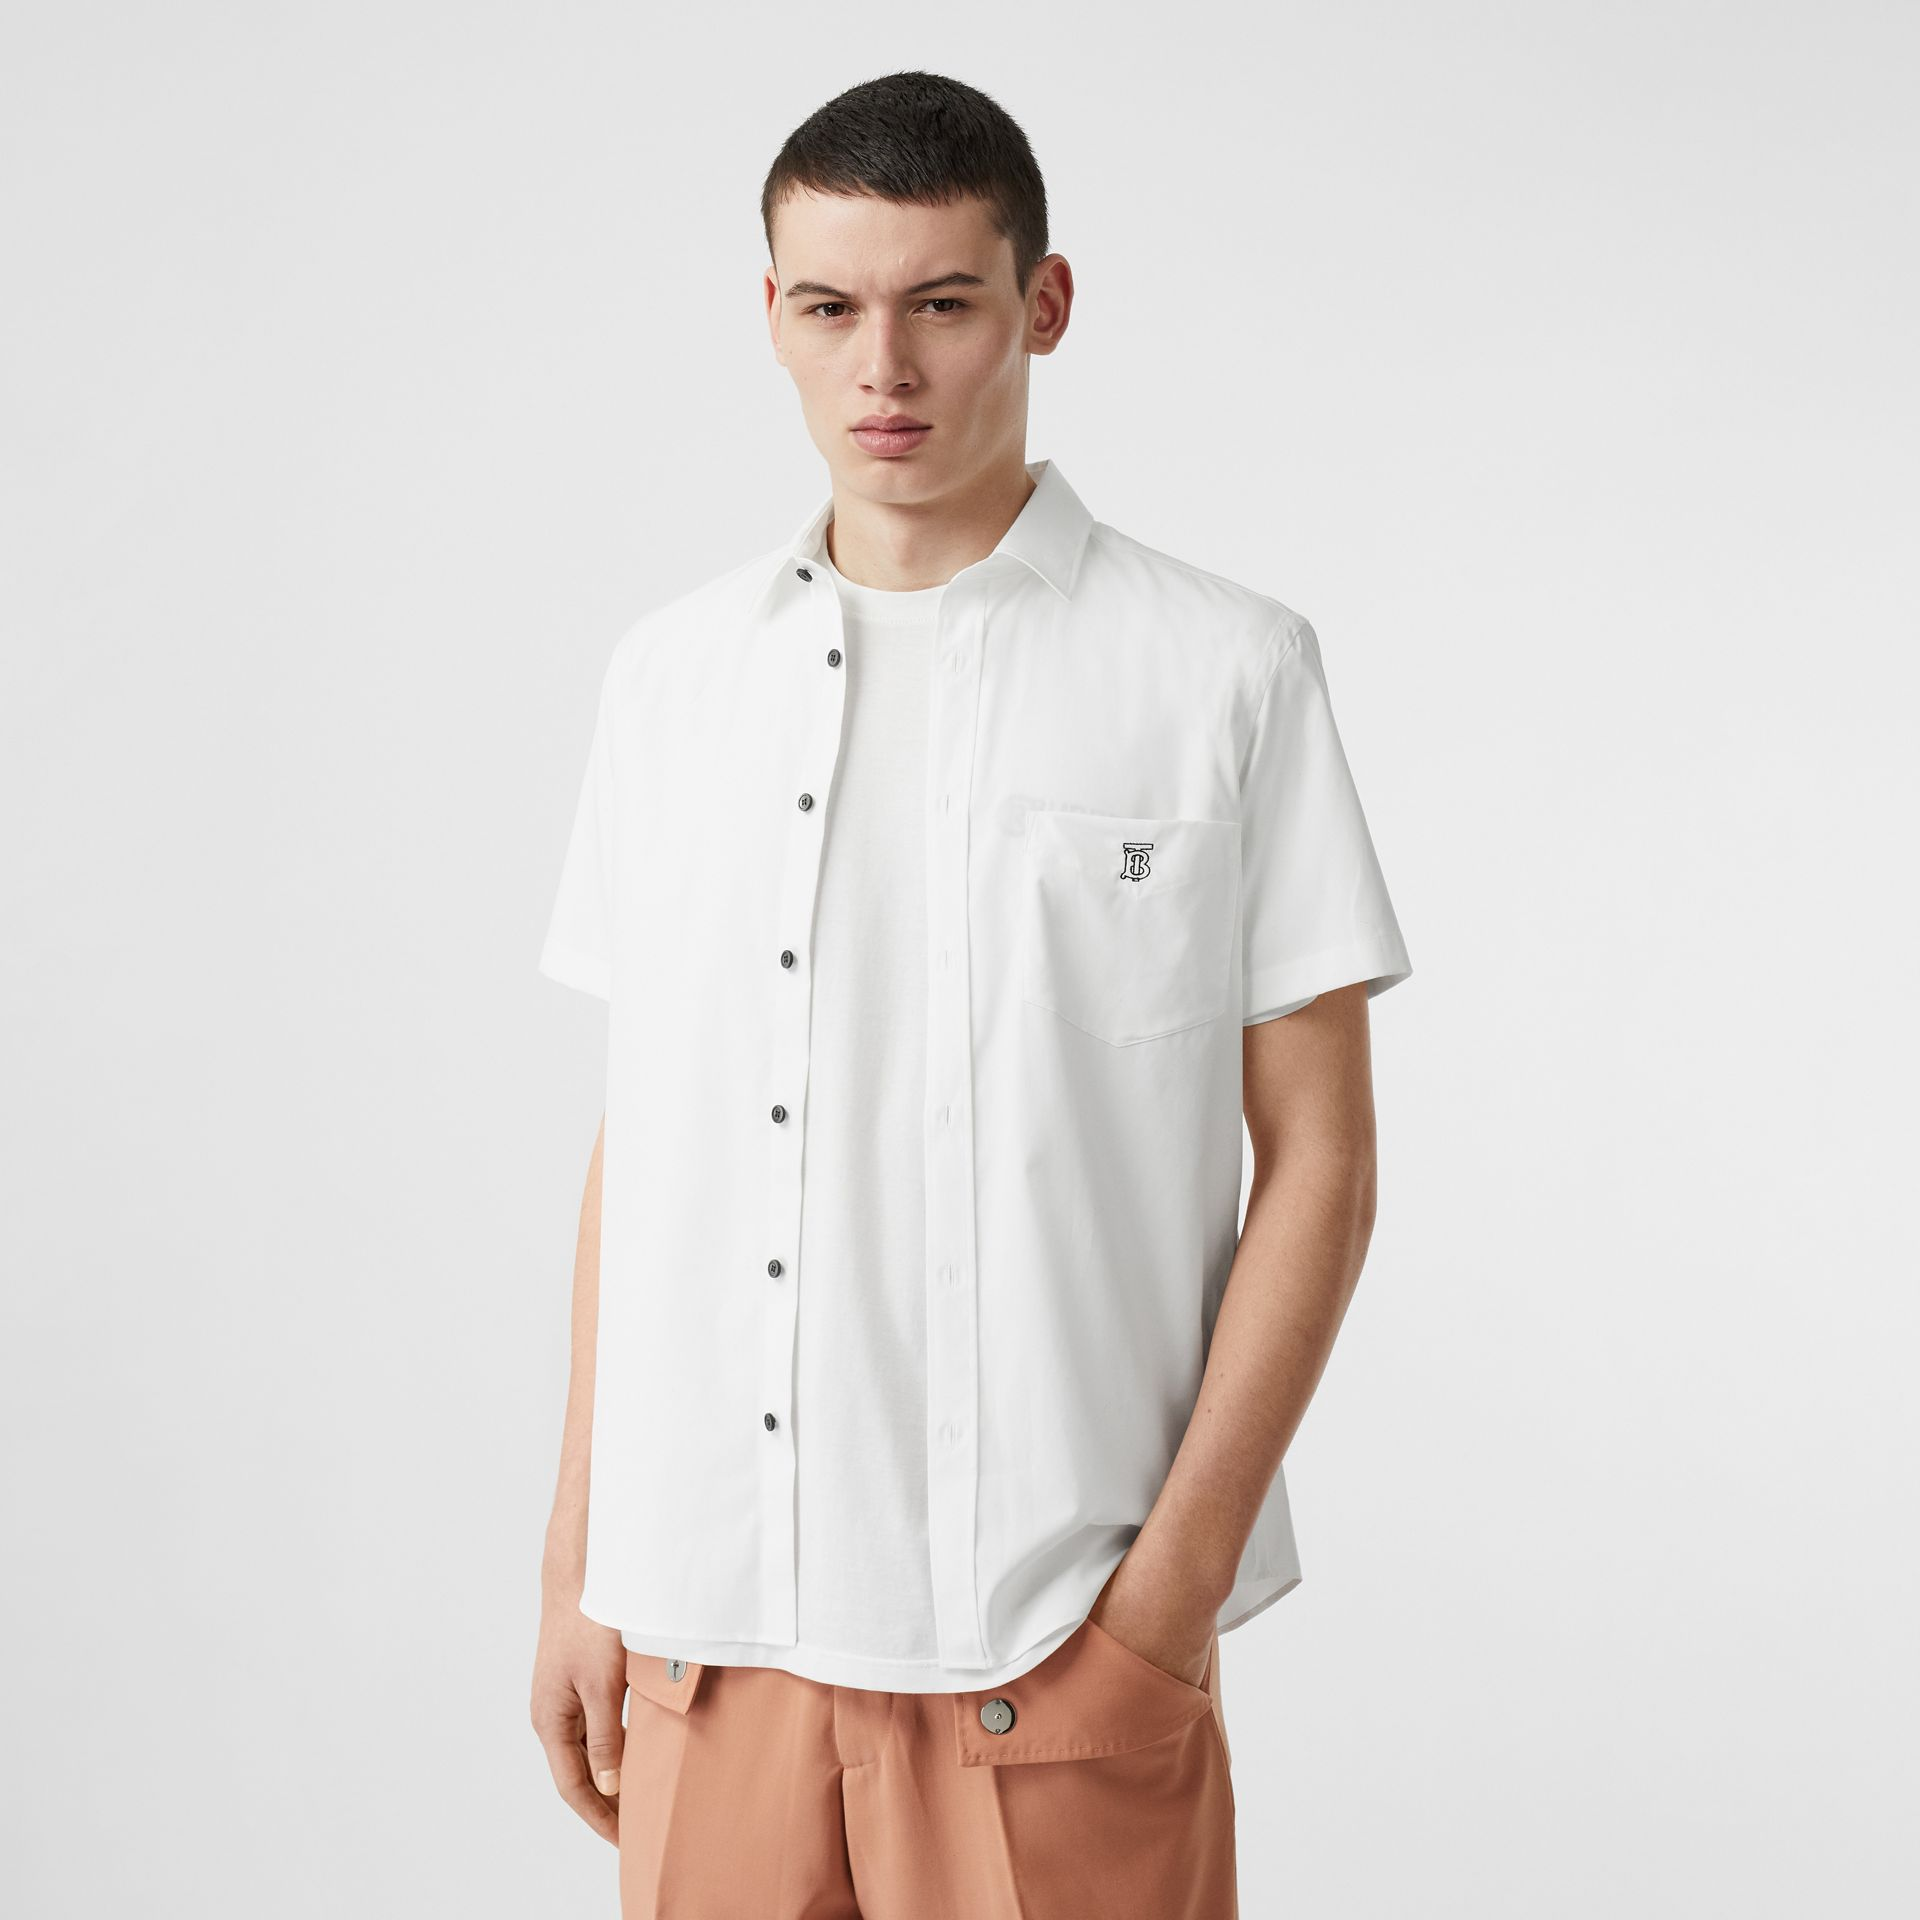 Monogram Motif Stretch Cotton Poplin Shirt in White - Men | Burberry Australia - gallery image 4